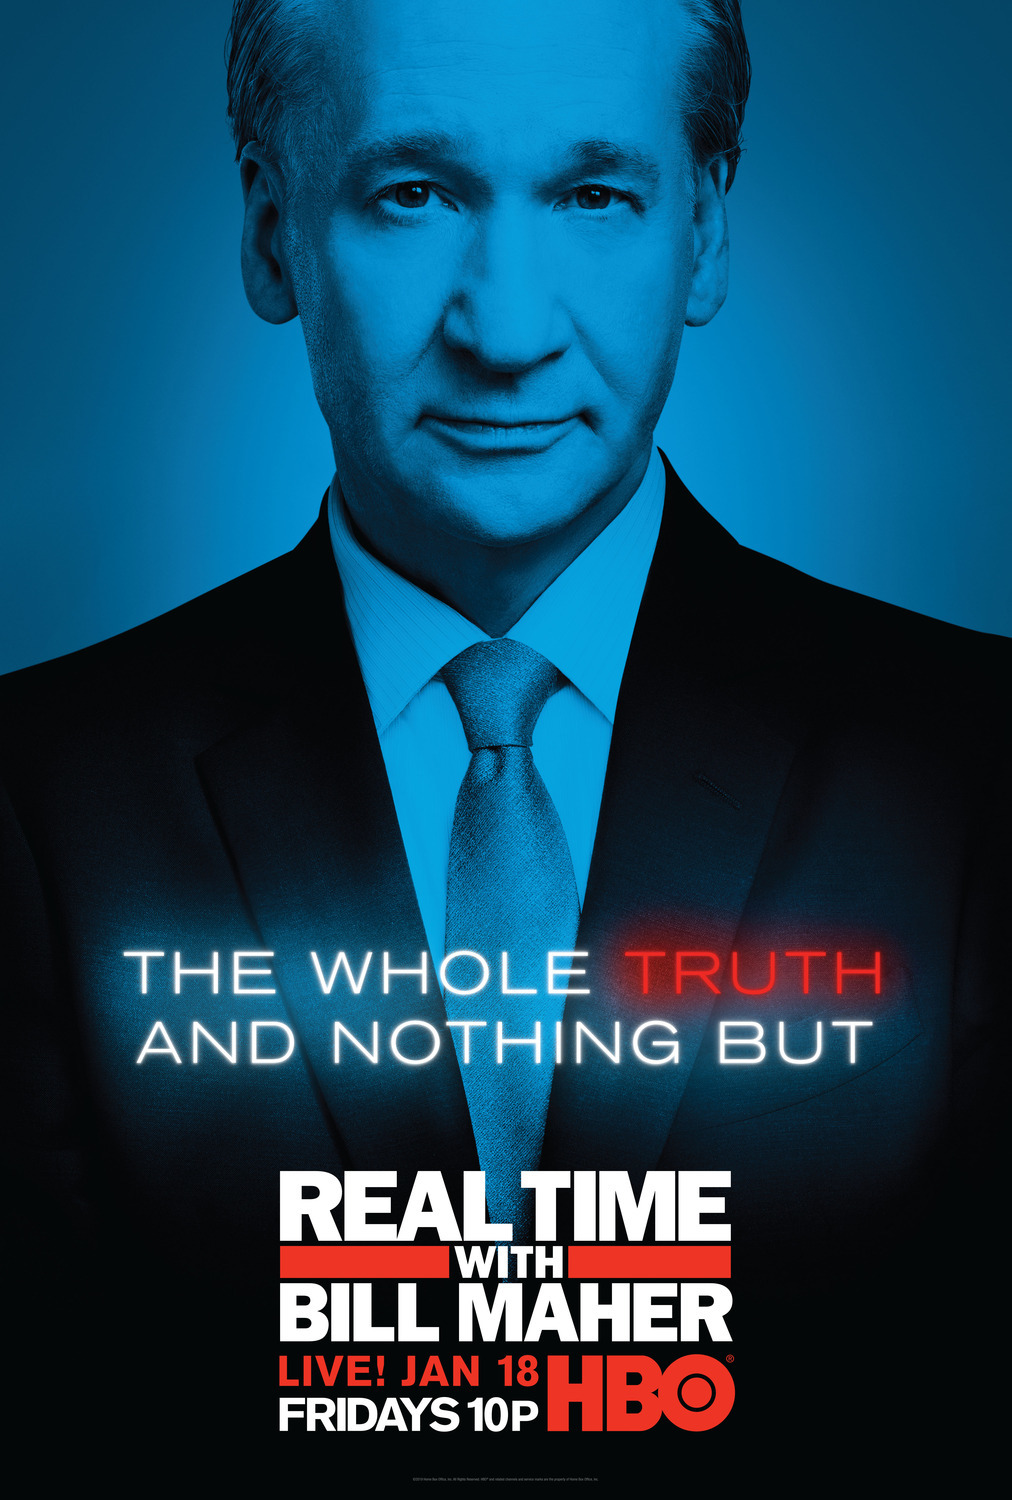 Real.Time.With.Bill.Maher.2020.02.14.1080p.WEB.h264-TBS